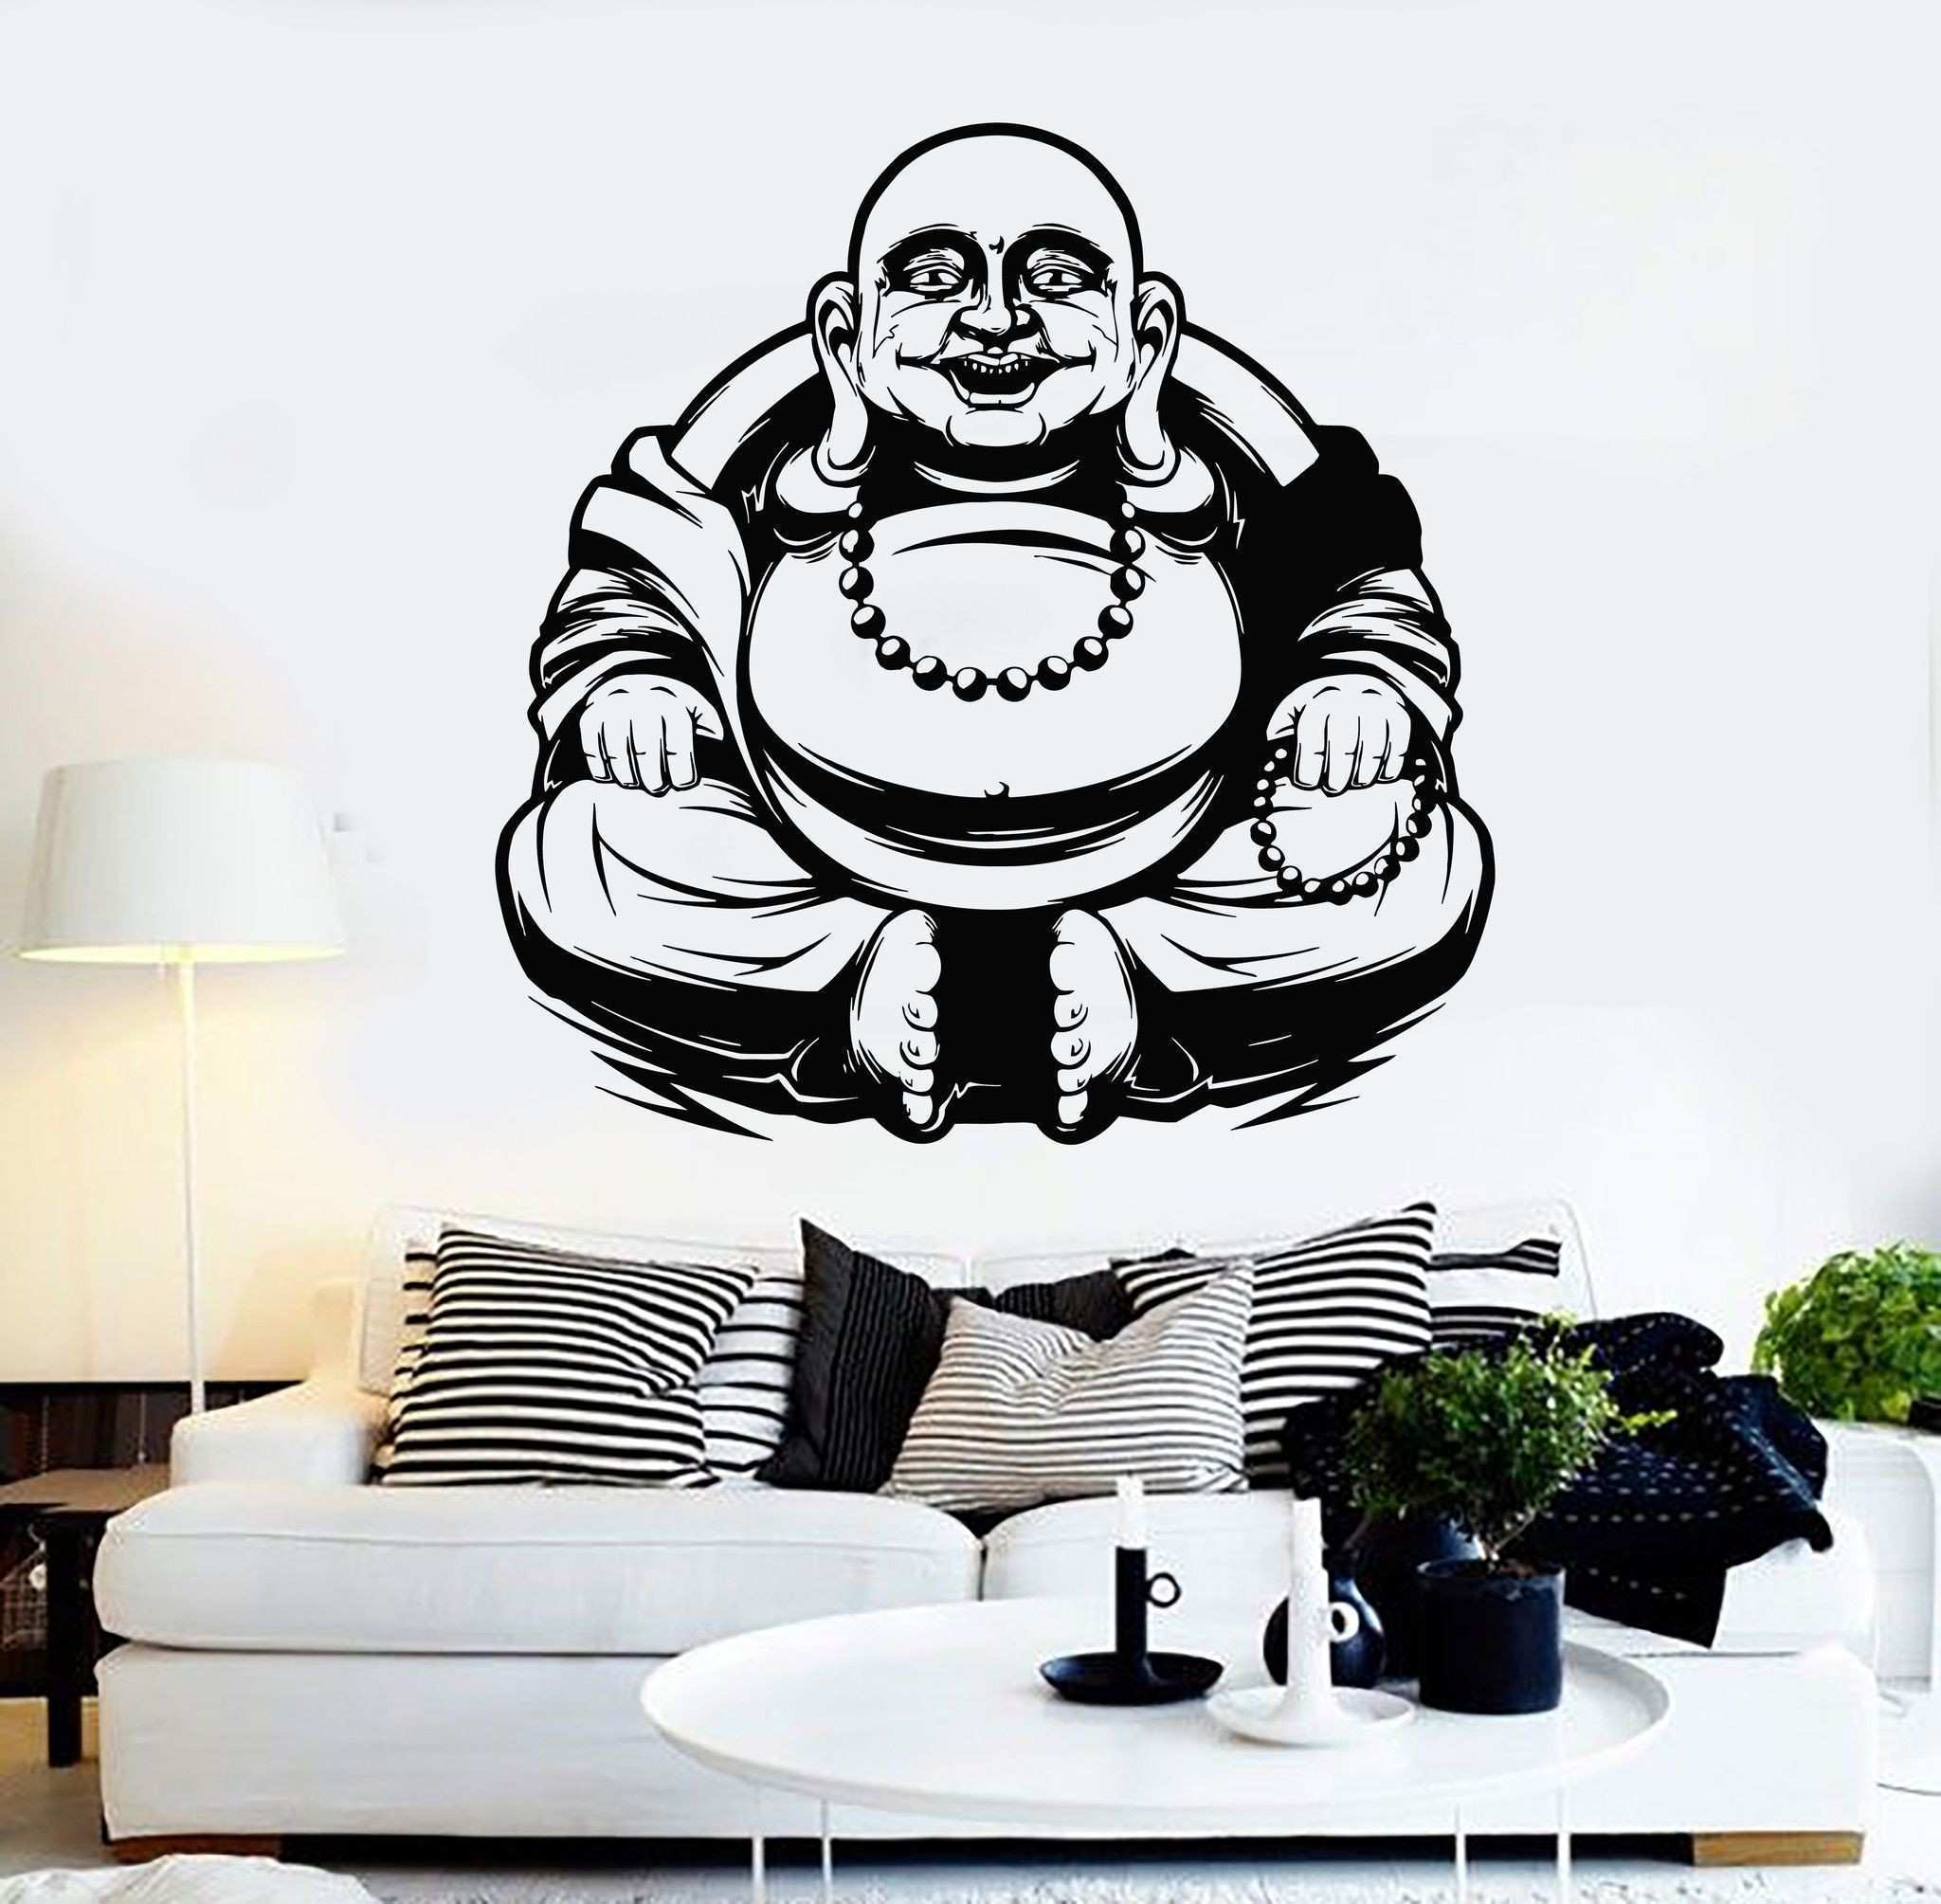 Vinyl Wall Decal Laughing Buddha Buddhism Monk Stickers Unique Gift